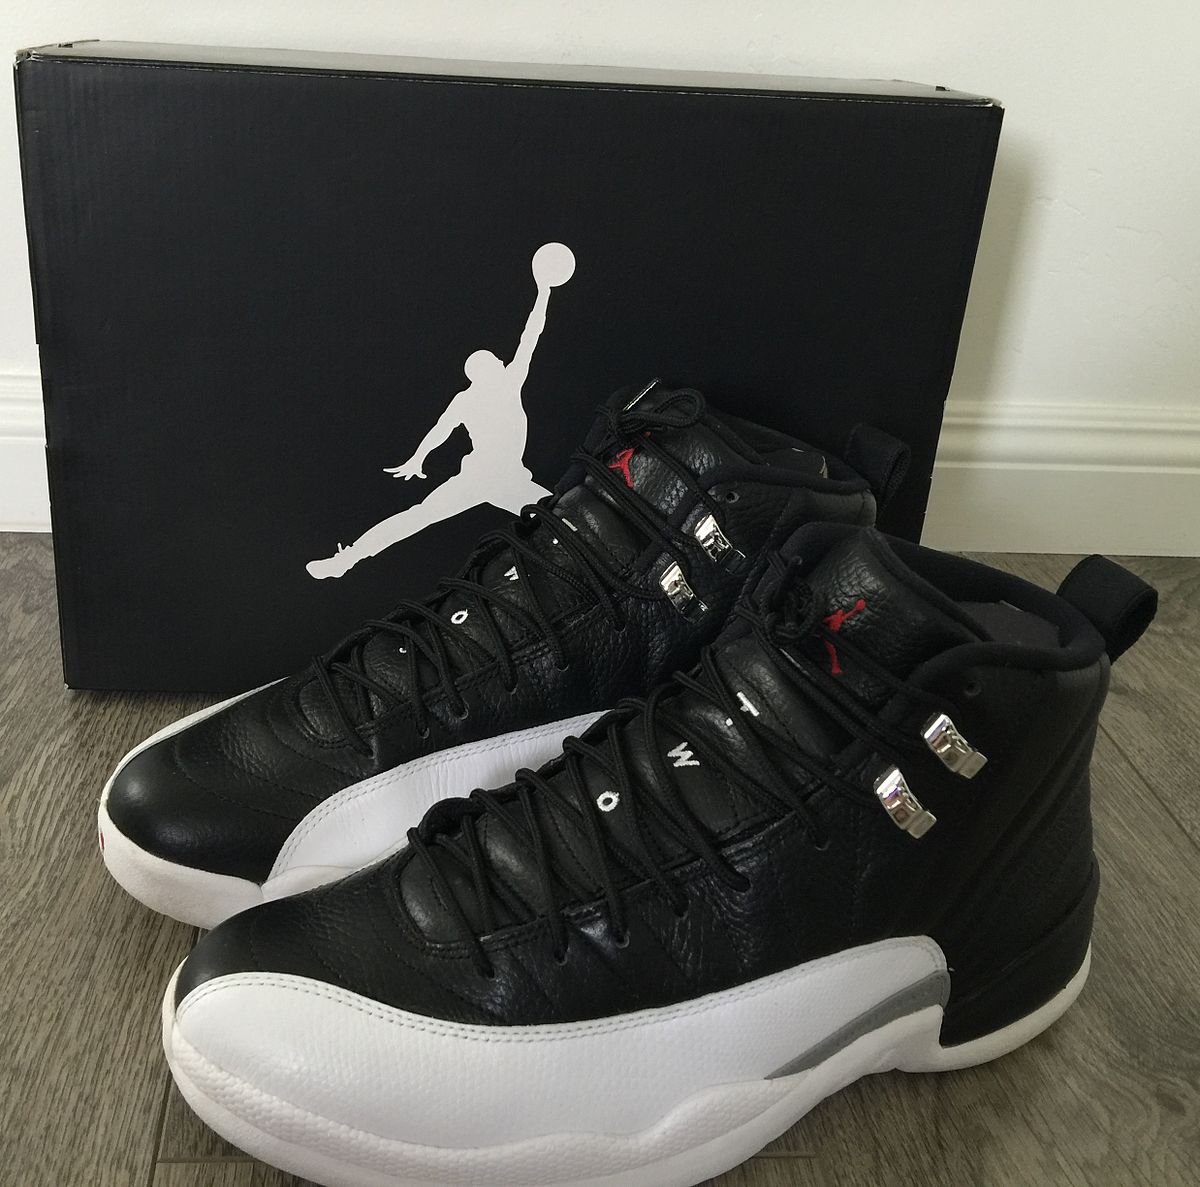 5c4f42f50bcf28 Air Jordan Retro XII - Wikipedia